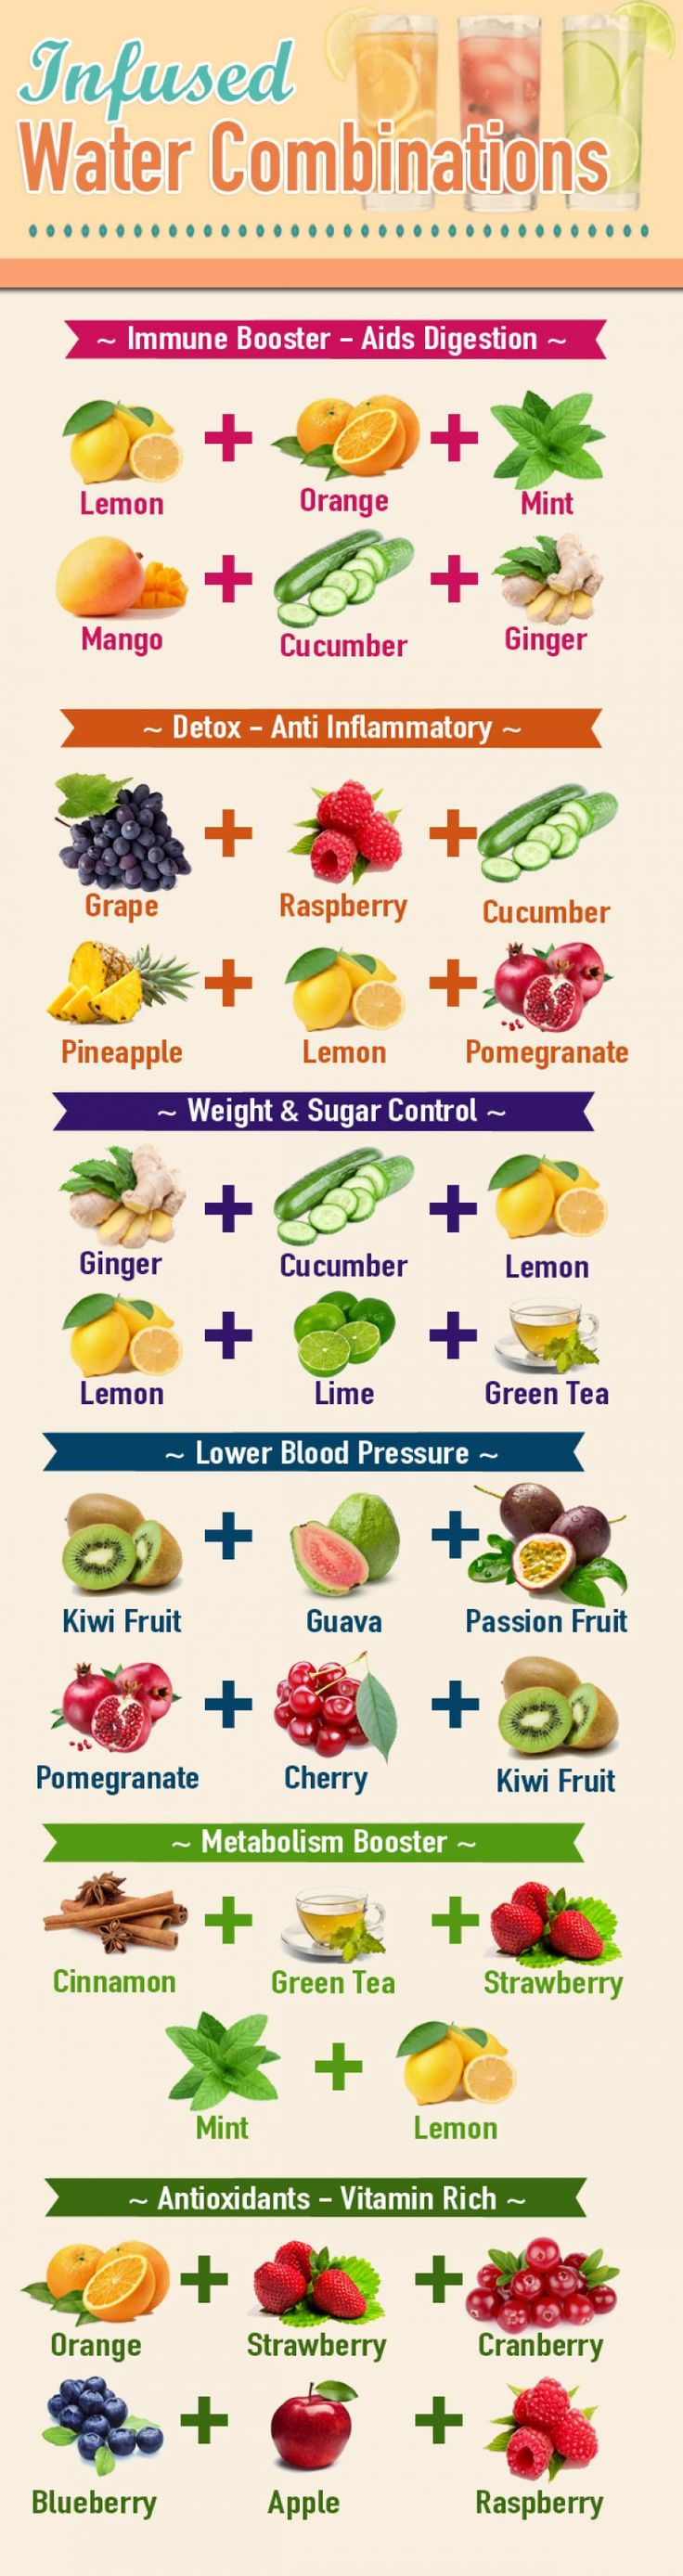 fruit infused water recipes infographic